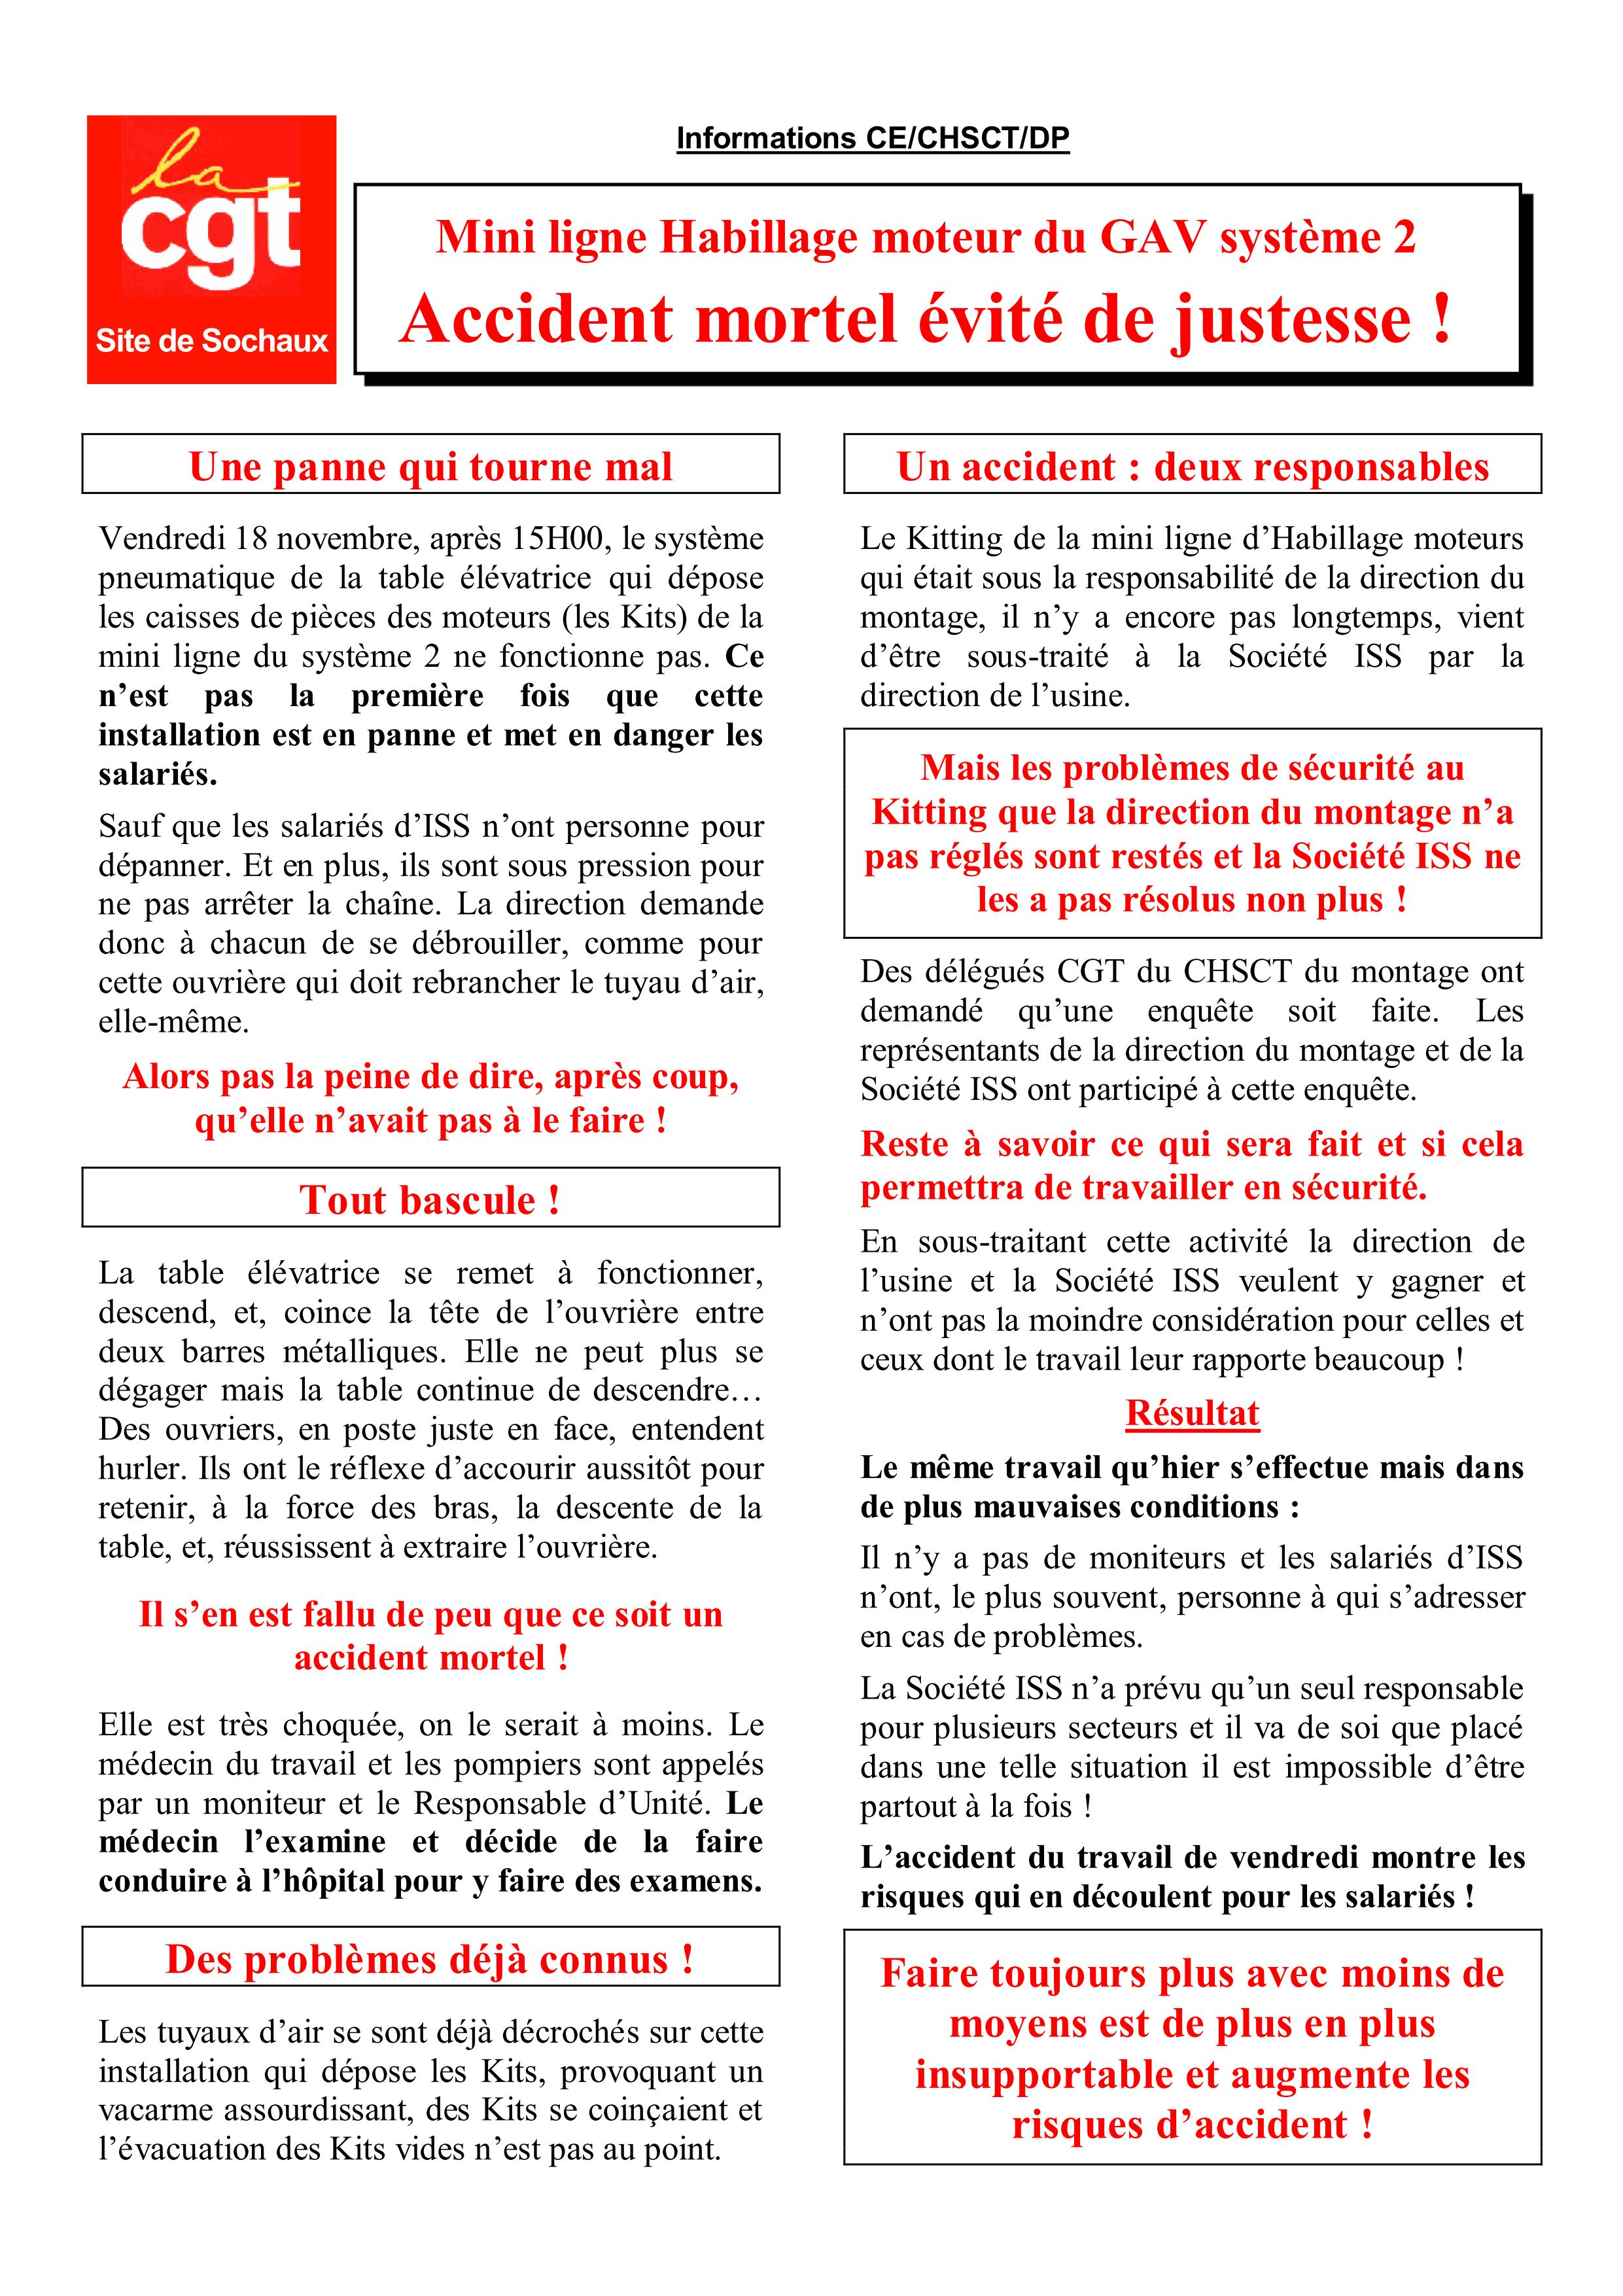 tract-gav-systeme-2-montage